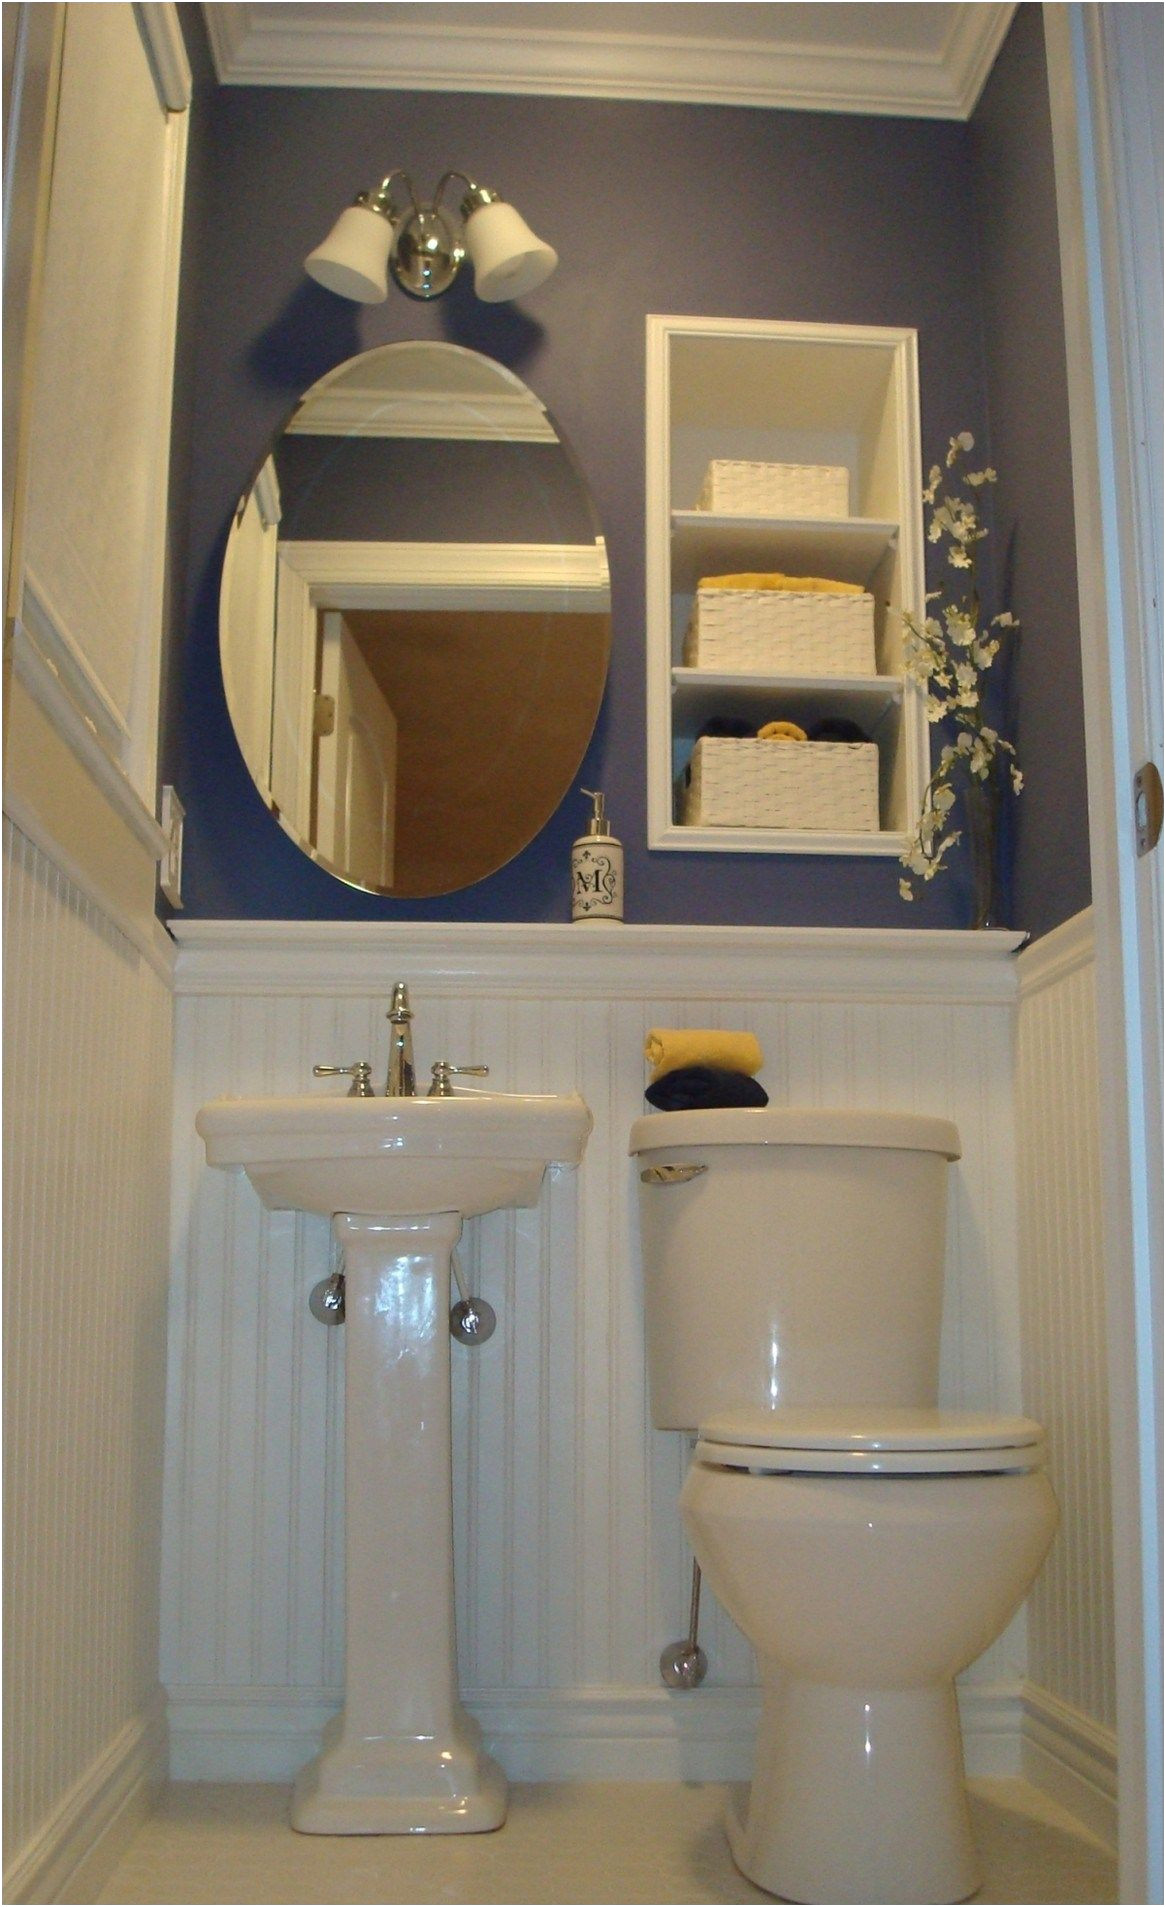 Inspirational Storage Ideas for Bathroom with Pedestal Sink